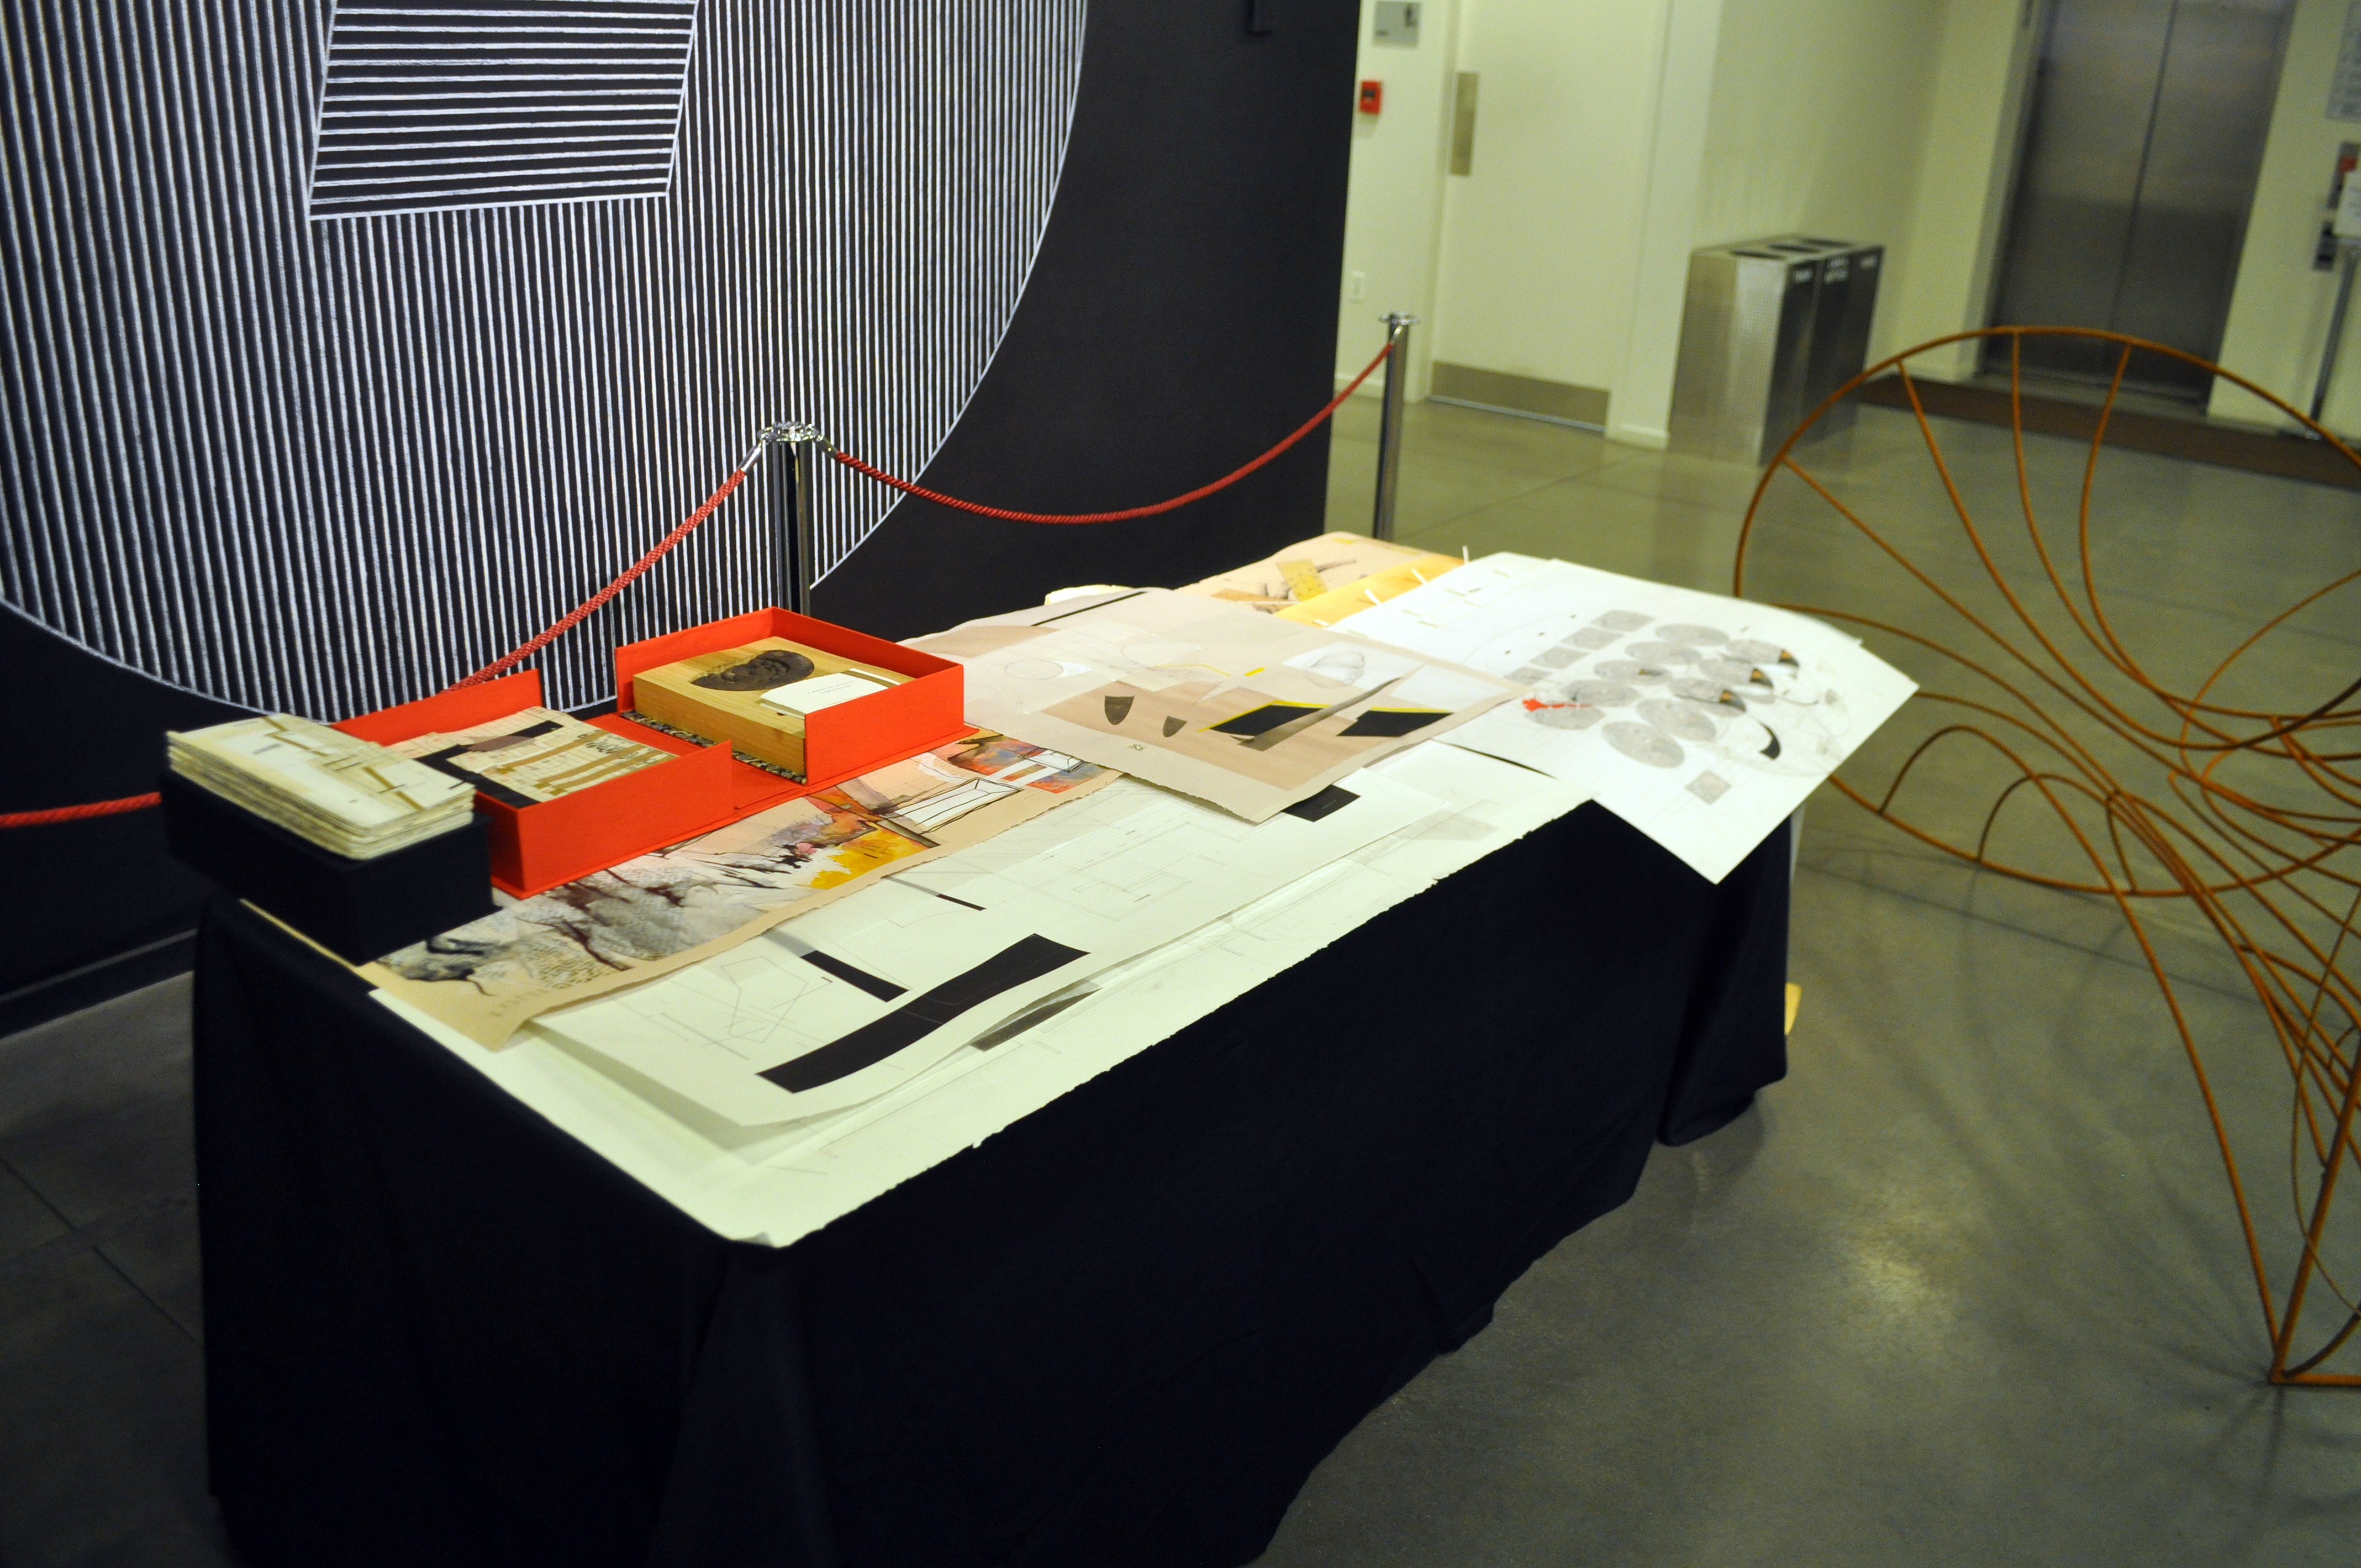 Matthew bohne risd museum design the night blueprint spring 2015 table with drawings and books in front of sol lewitt wall drawing 328 1980 helen m danforth acquisition fund malvernweather Images